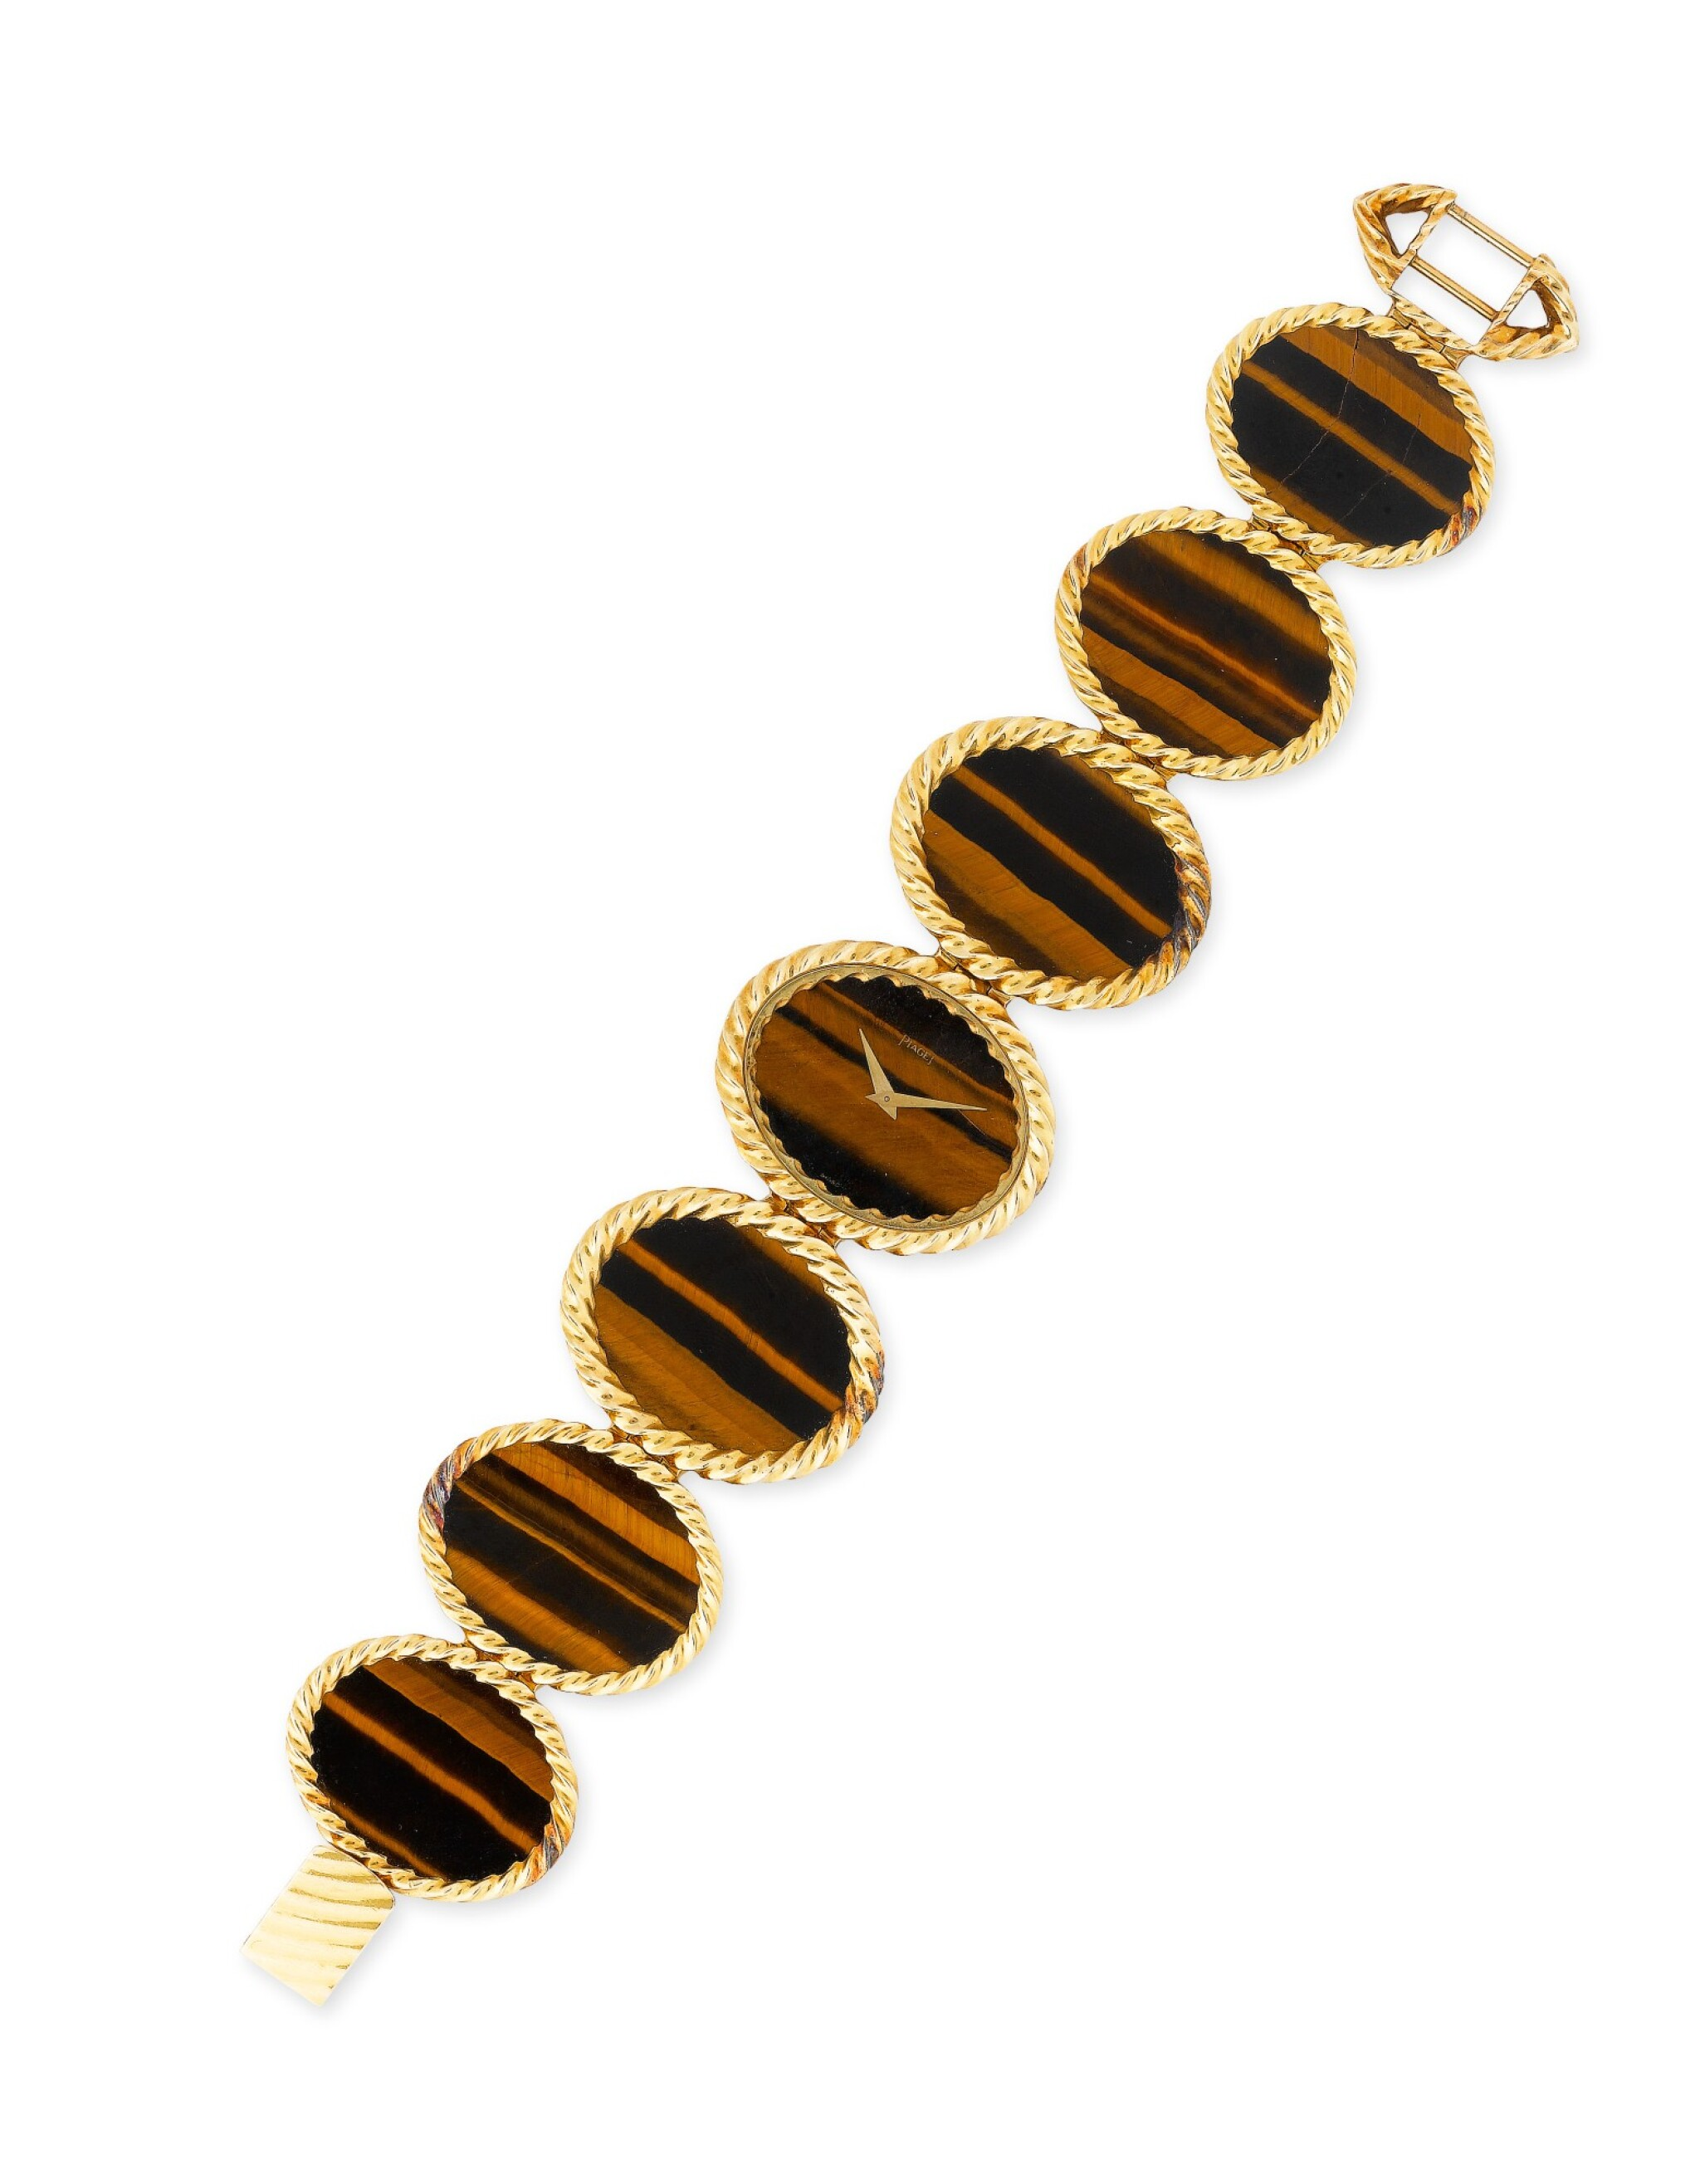 View full screen - View 1 of Lot 117. Montre bracelet de dame oeil-de-tigre, ref. 9855 | Lady's tiger-eye bracelet watch, ref. 9855.